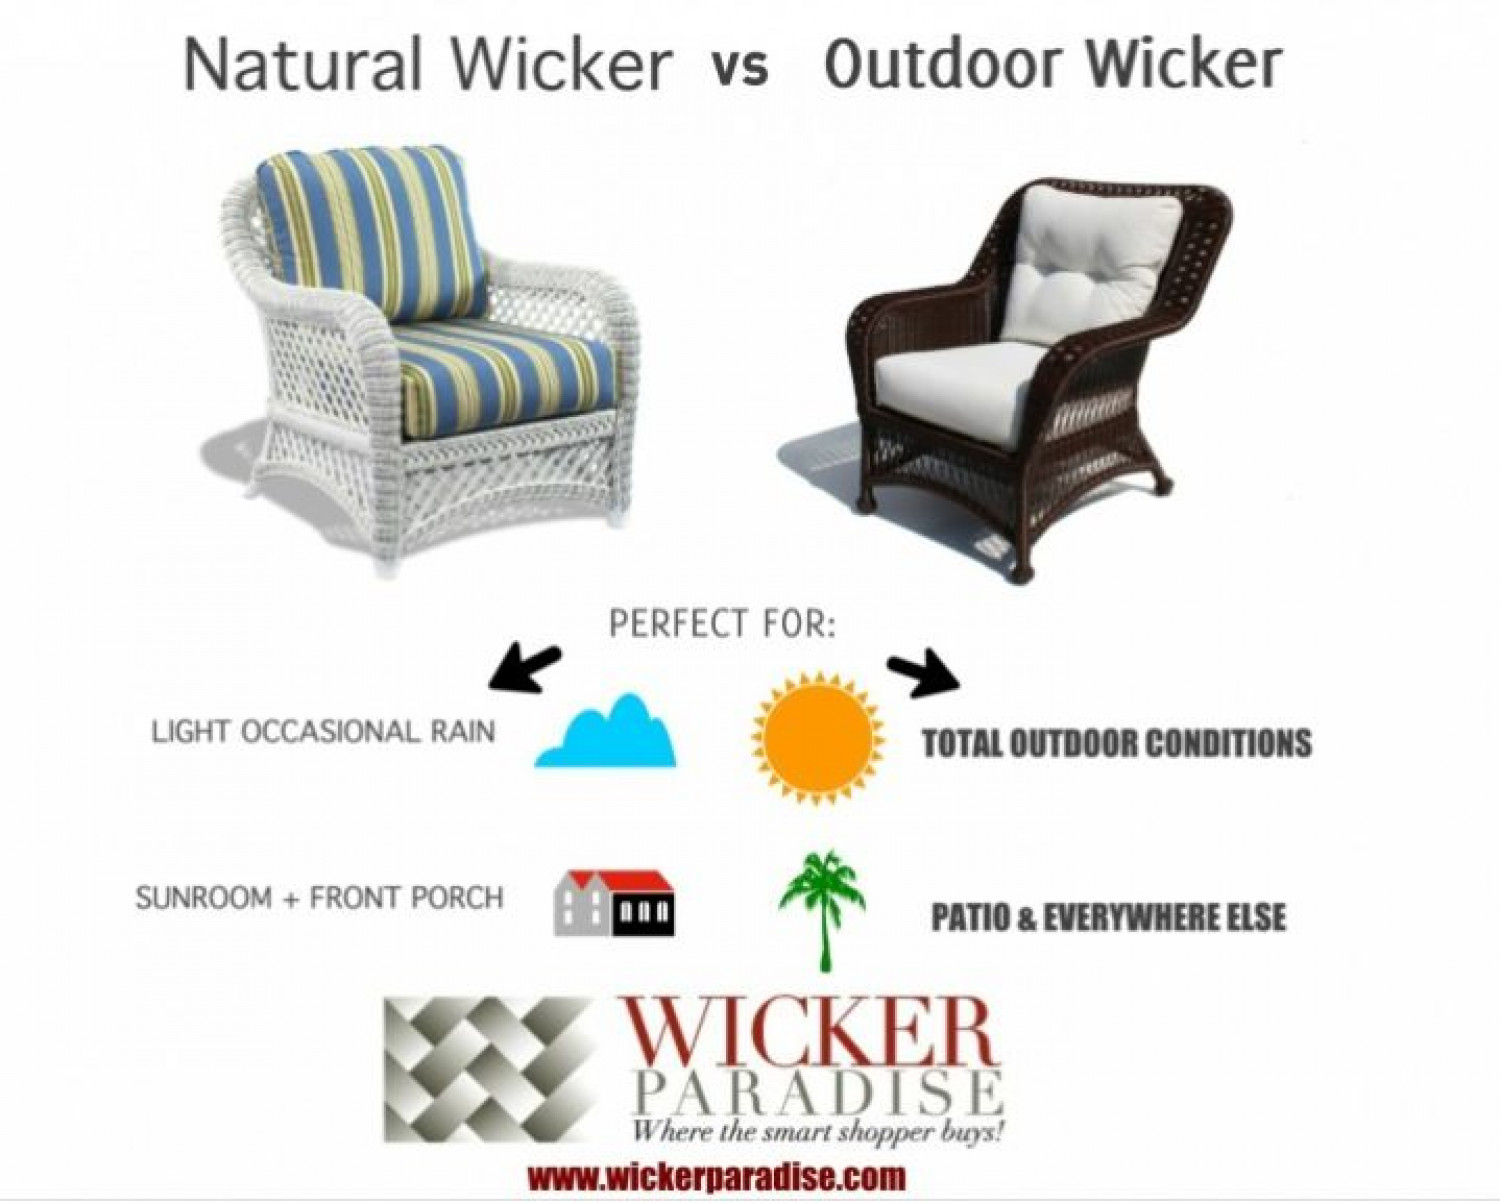 Wicker Furniture Indoor vs Outdoor Use Infographic